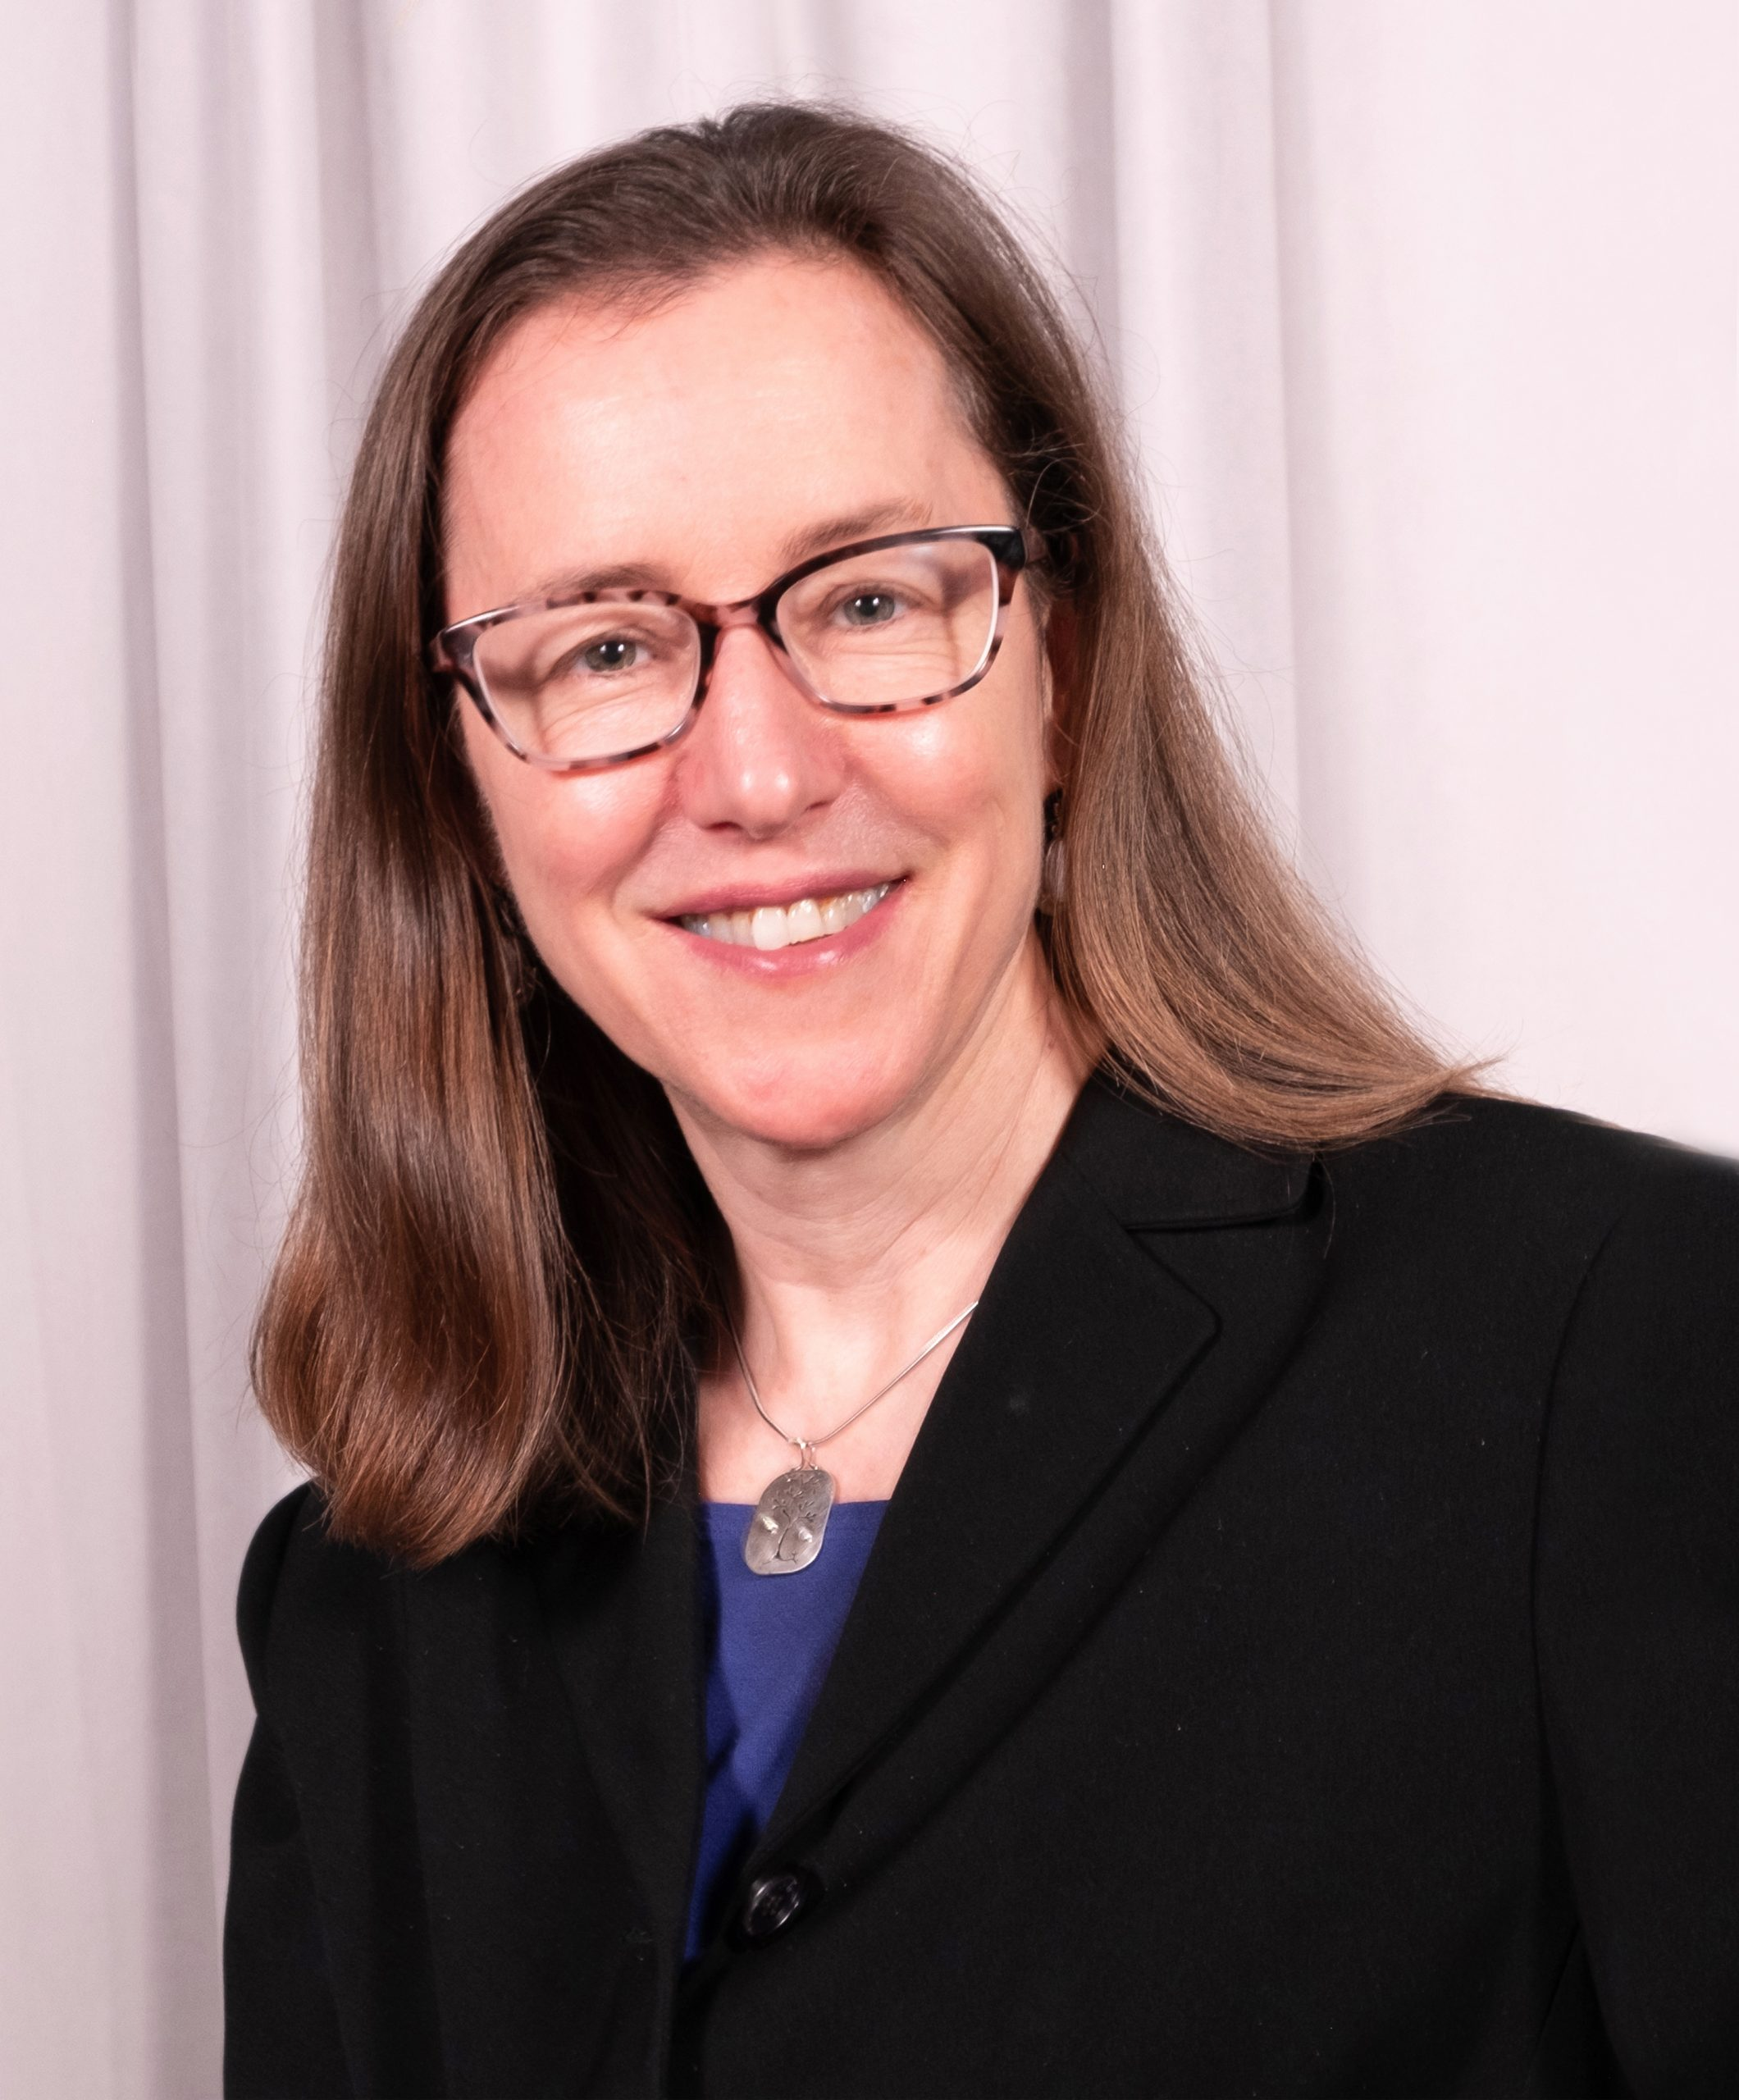 photos of HCAI Director Elizabeth Landsberg in front of white background. She is wearing a dark-colored jacket and glasses.